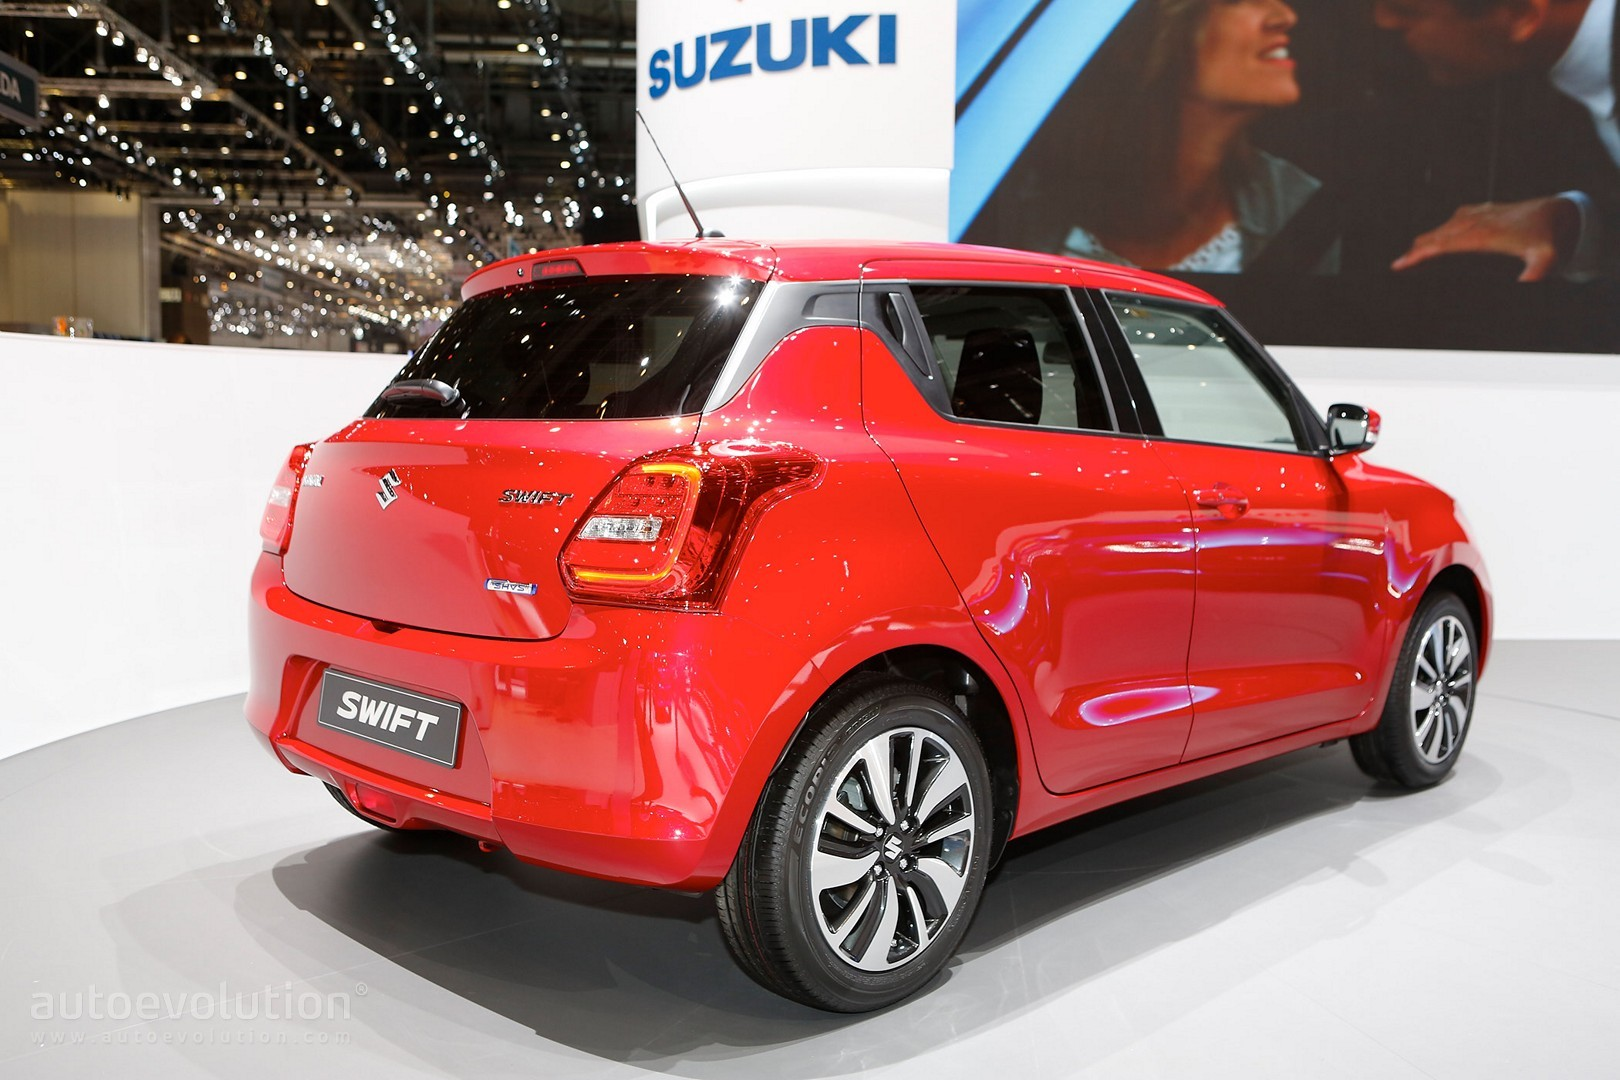 2017 suzuki swift makes european debut in geneva autoevolution. Black Bedroom Furniture Sets. Home Design Ideas